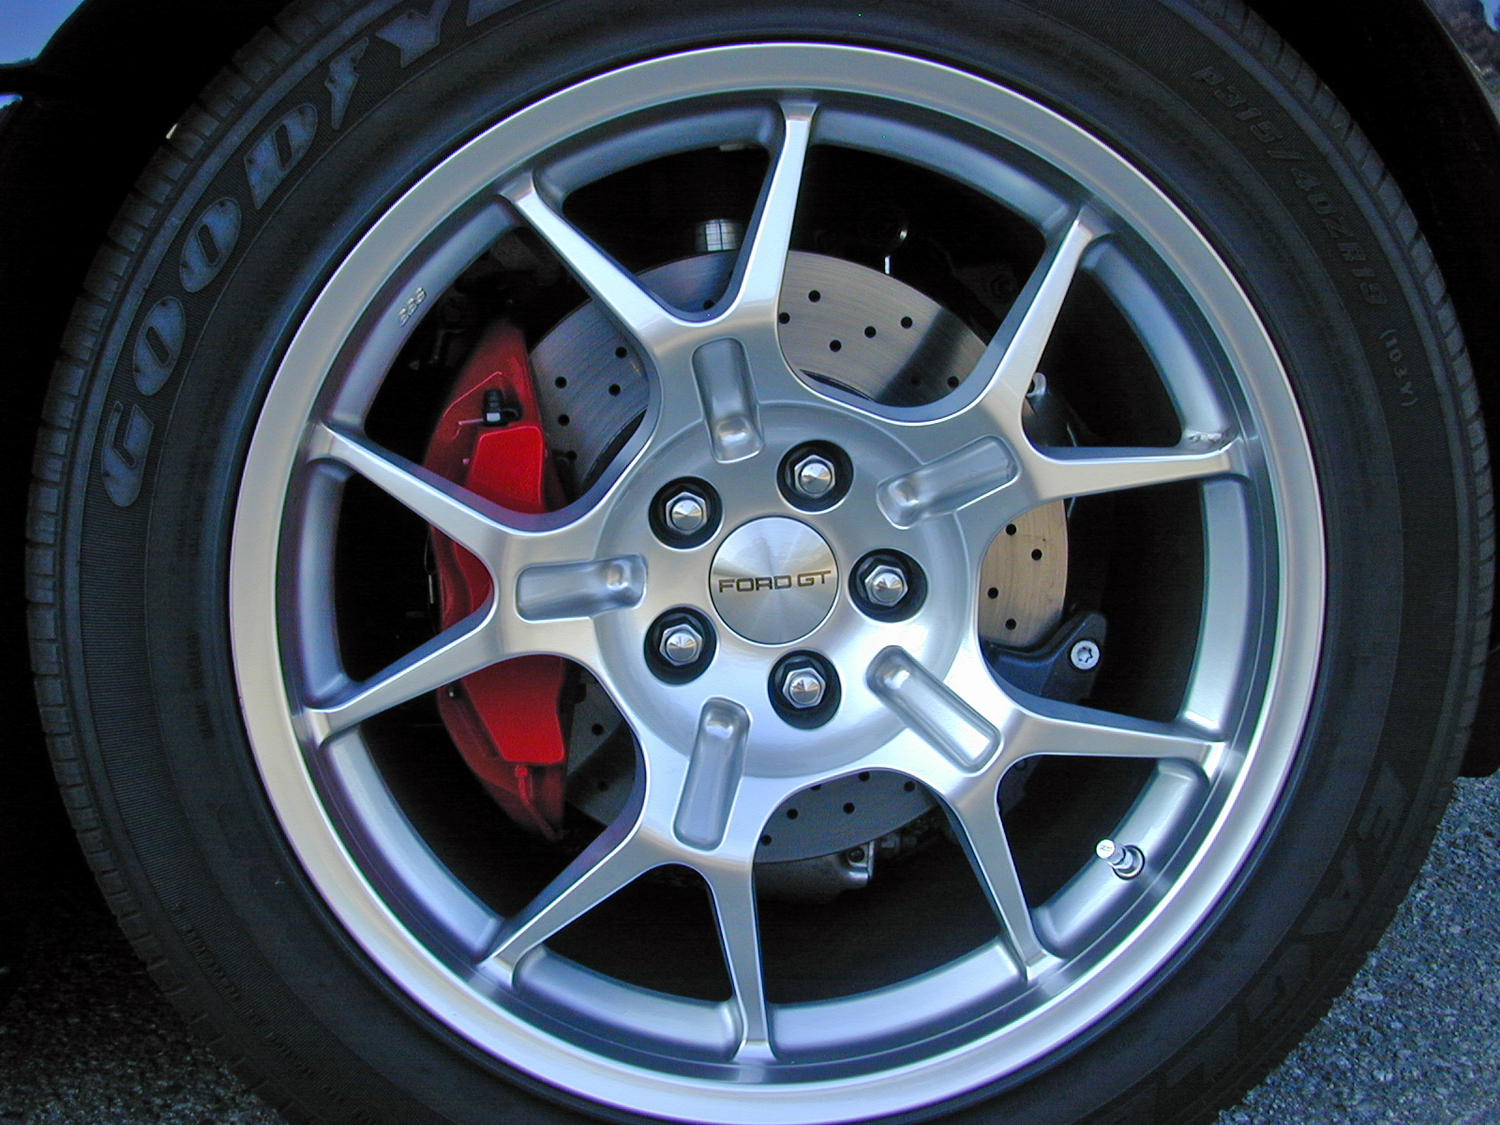 2005 Ford GT BBS Wheel